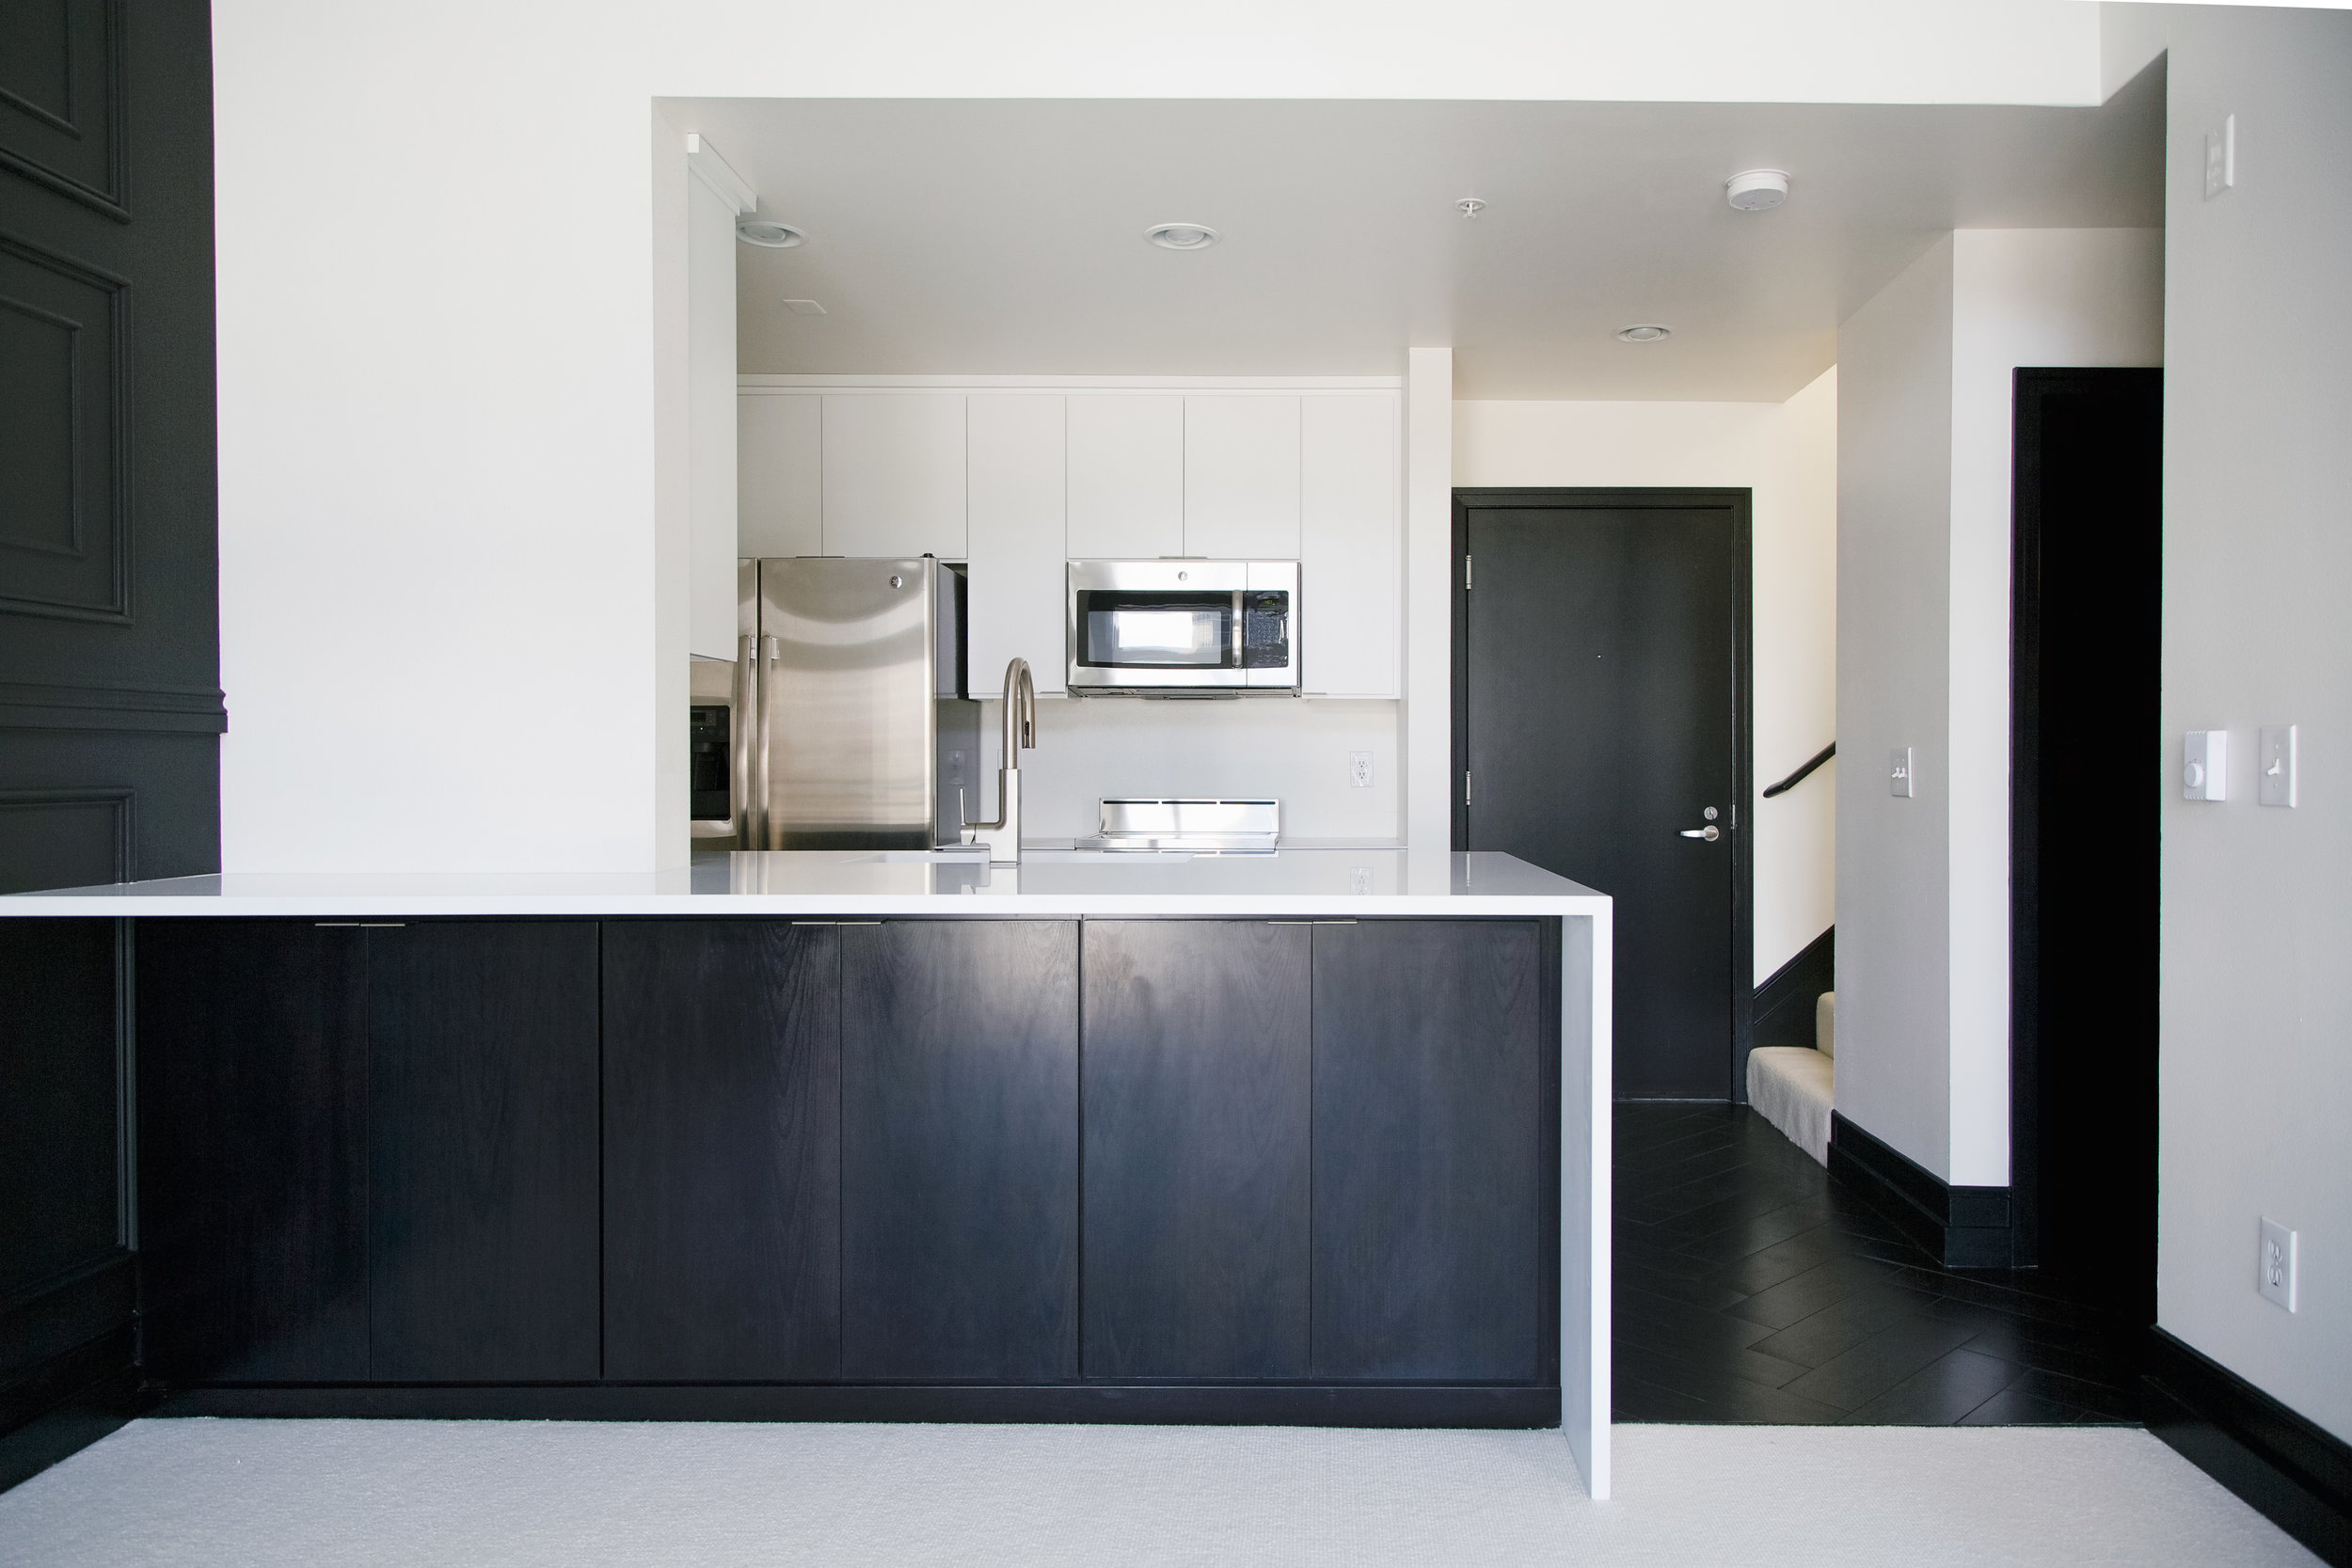 Modern black and white kitchen with pental quartz waterfall countertop and stainless steel appliances. Black herrinbone floors and black wainscot moulding highlight this exception condominium in Seattle, Washington.